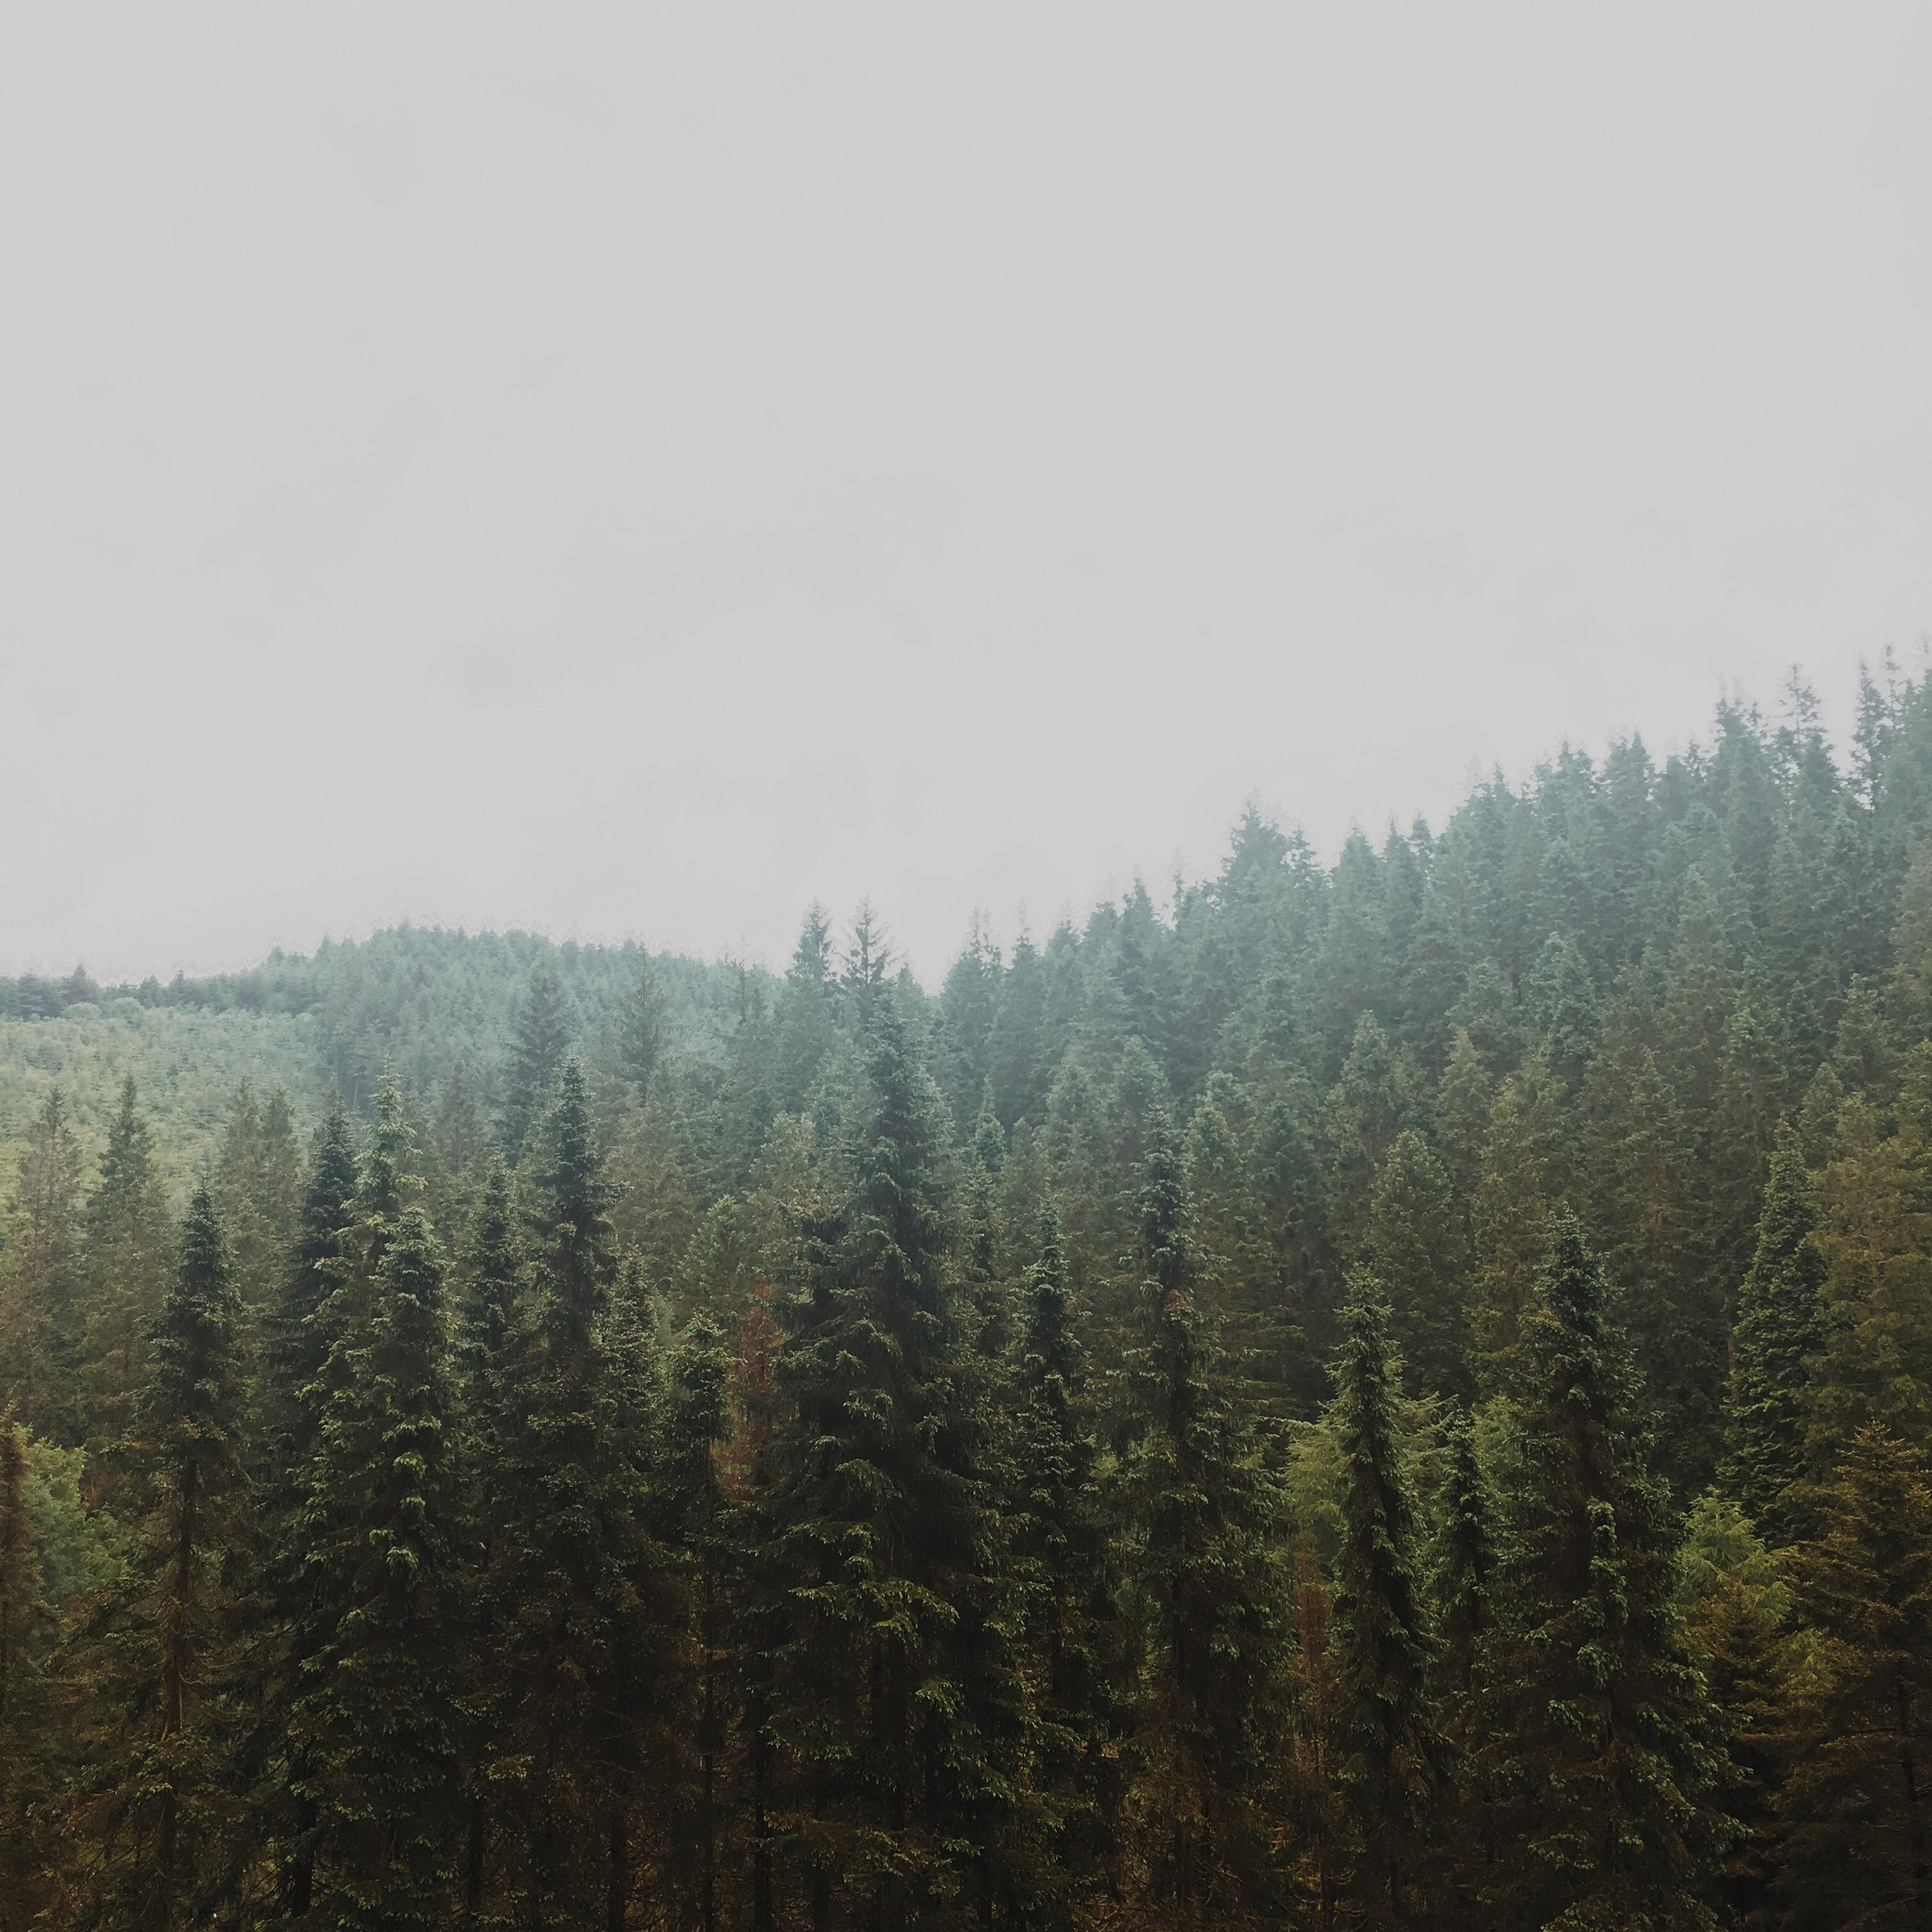 Deep filled pine forests. You could almost be in America's North West.